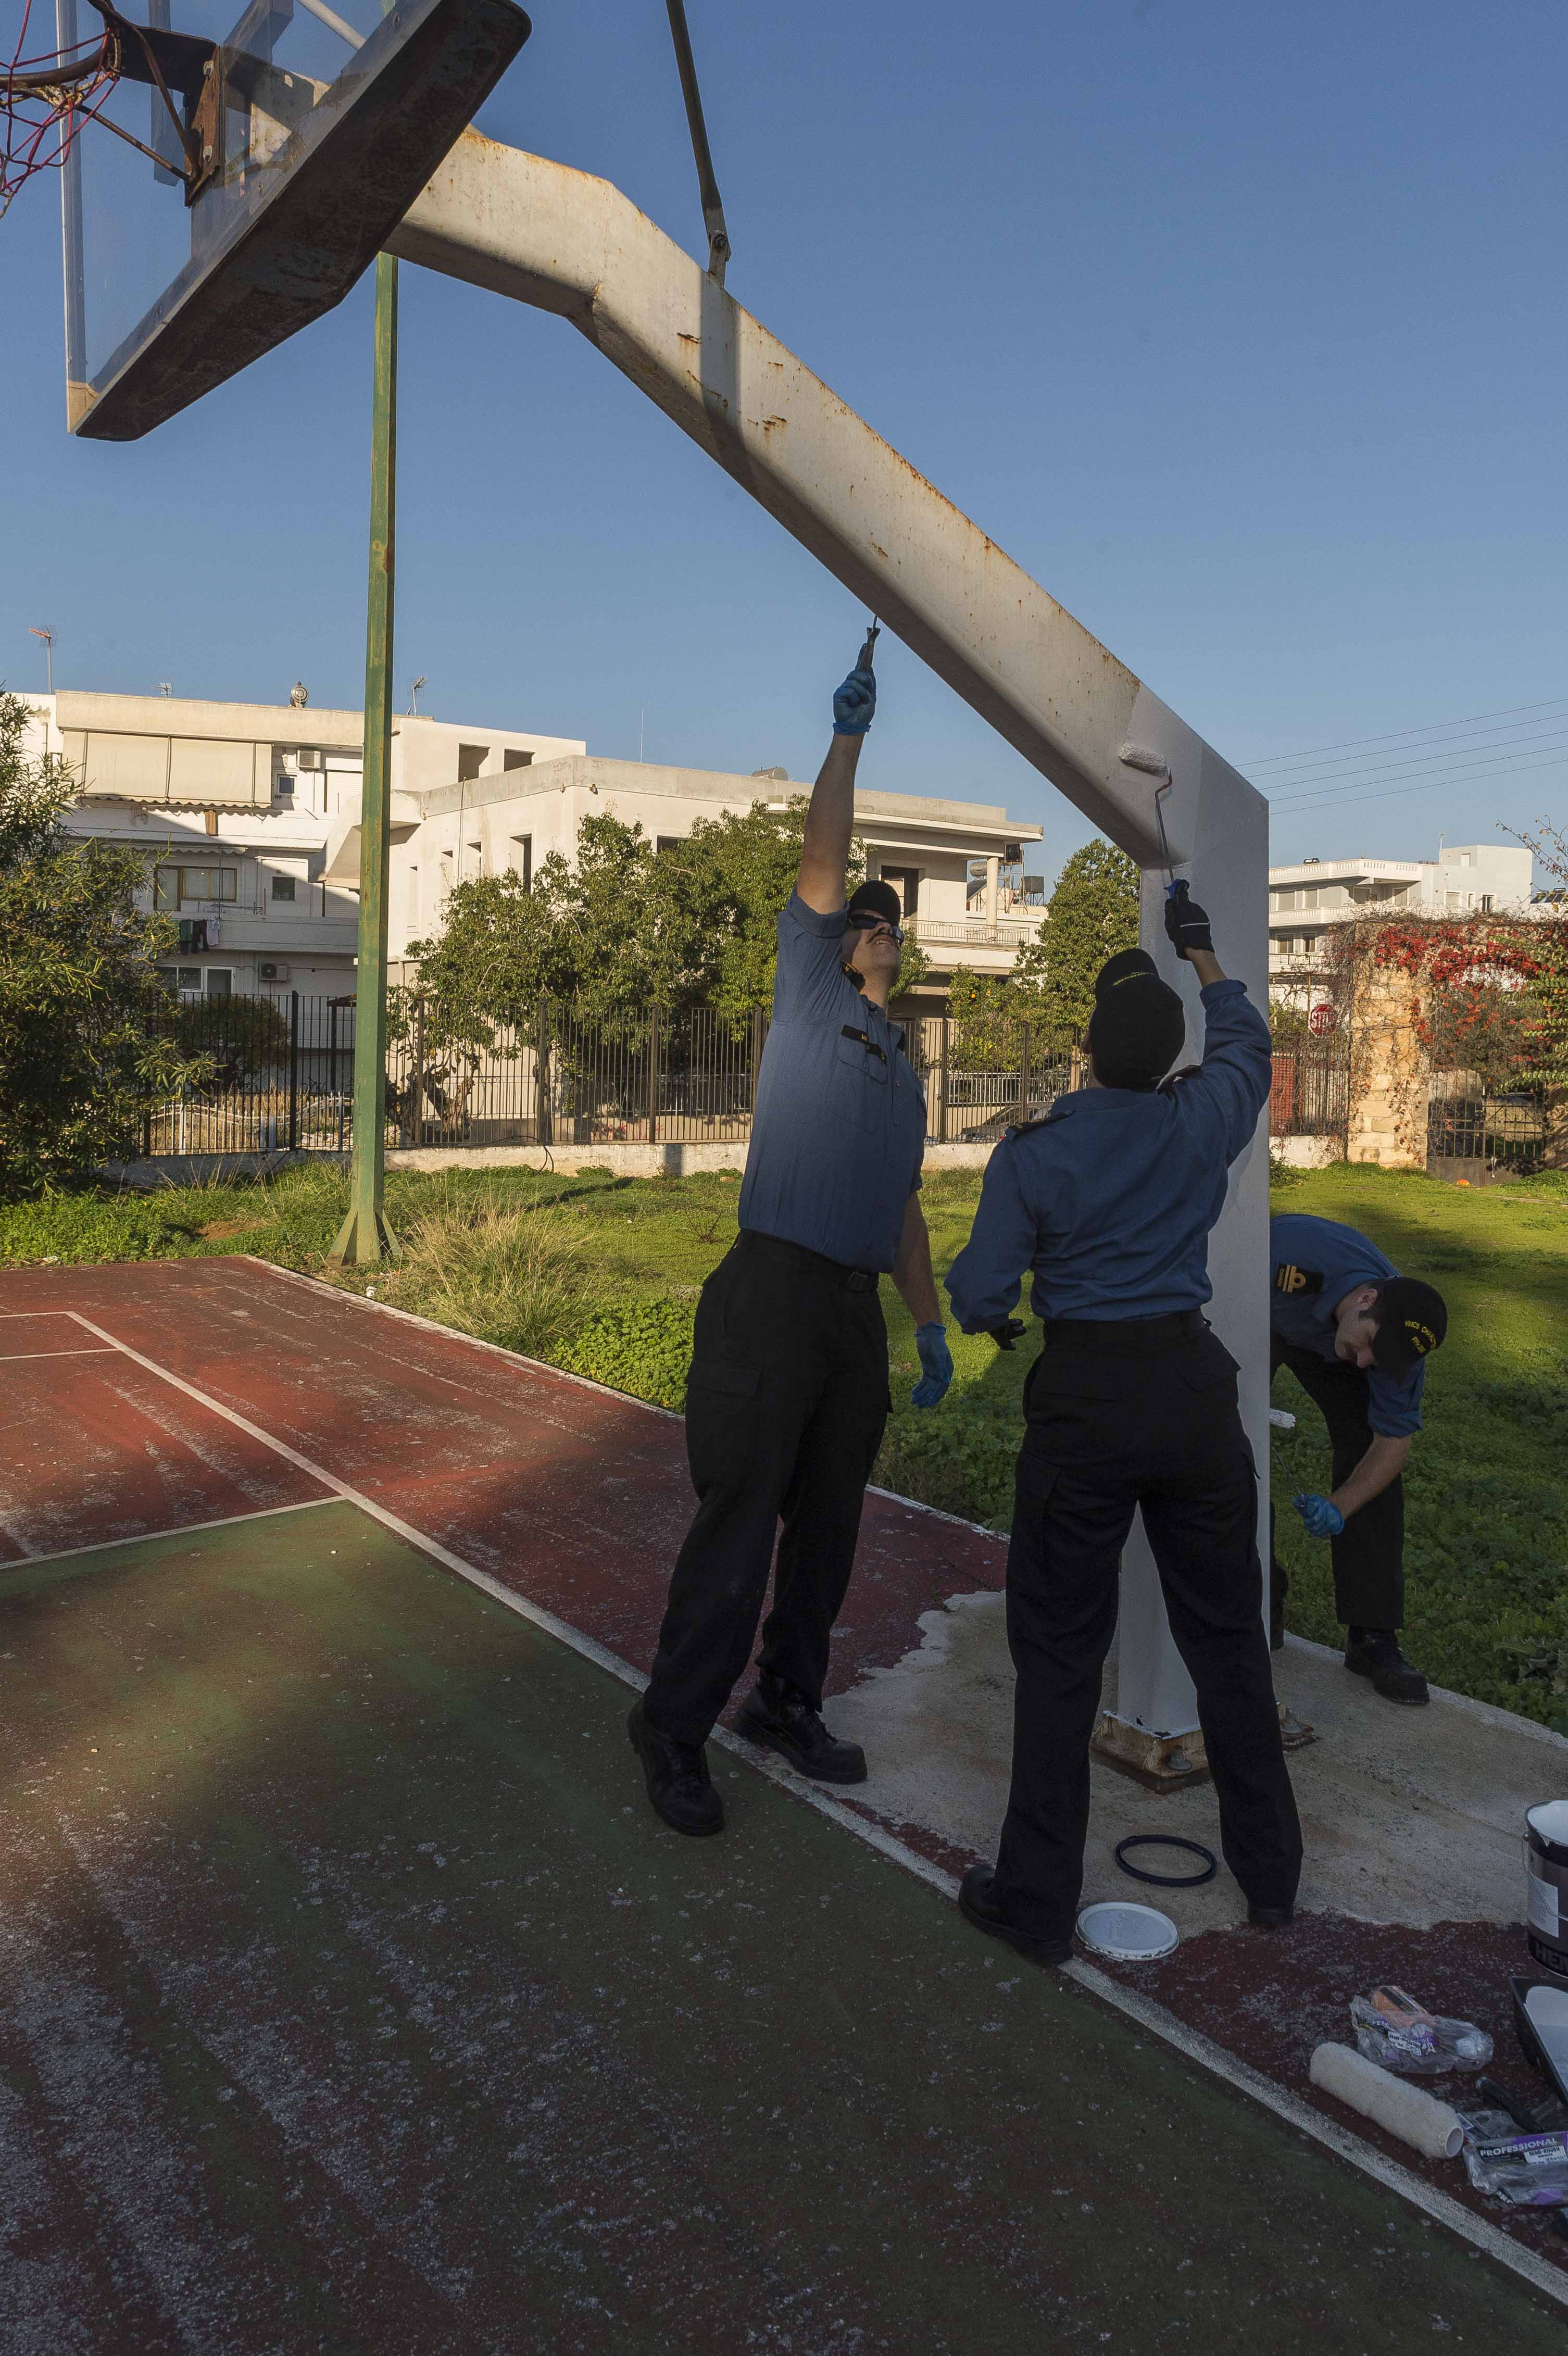 Crew members from Her Majesty's Canadian Ship (HMCS) Charlottetown spread some holiday cheer by helping to clean the grounds of an orphanage in Chania, Crete during OP REASSURANCE, December 10, 2016.